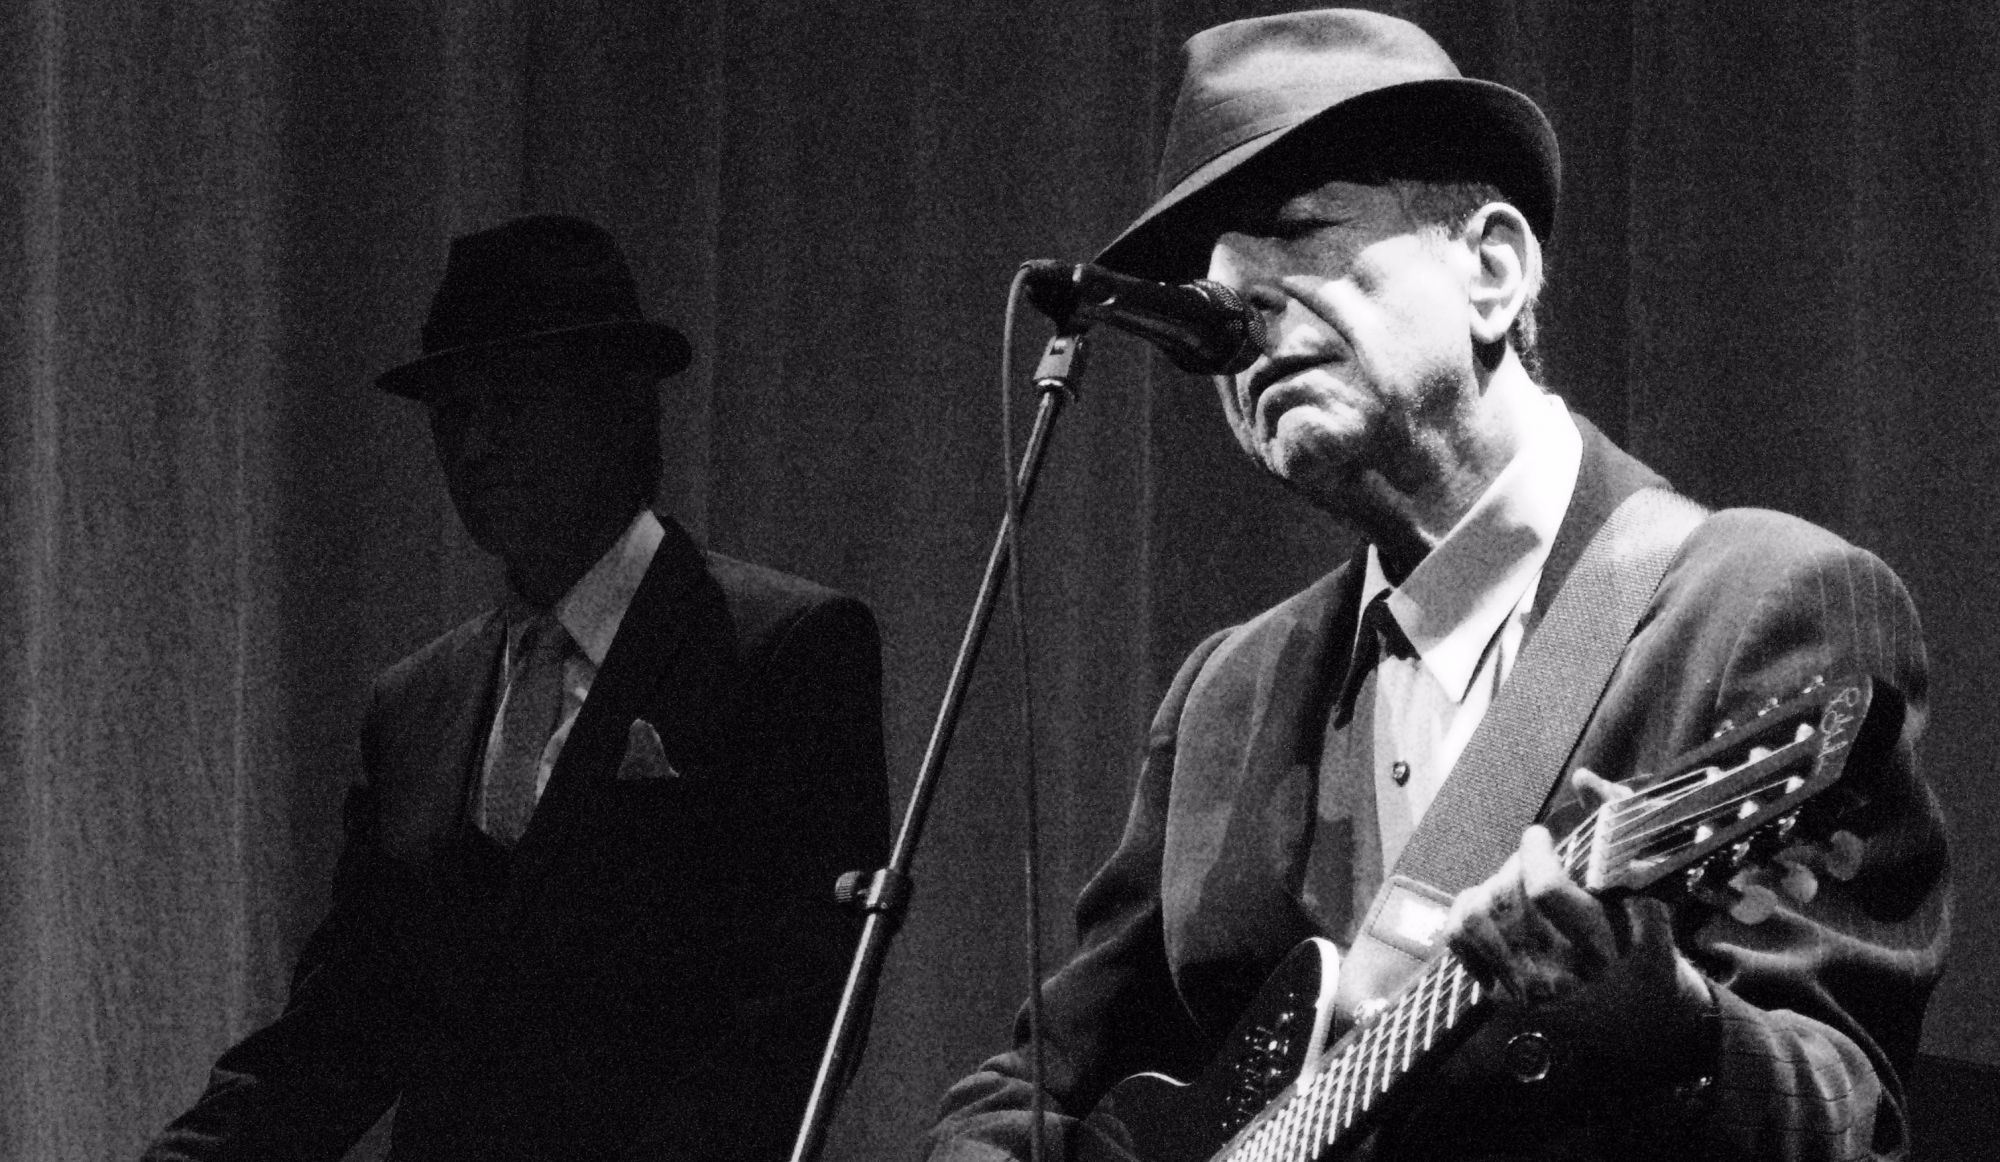 Leonard Cohen's Final Book due in 2018